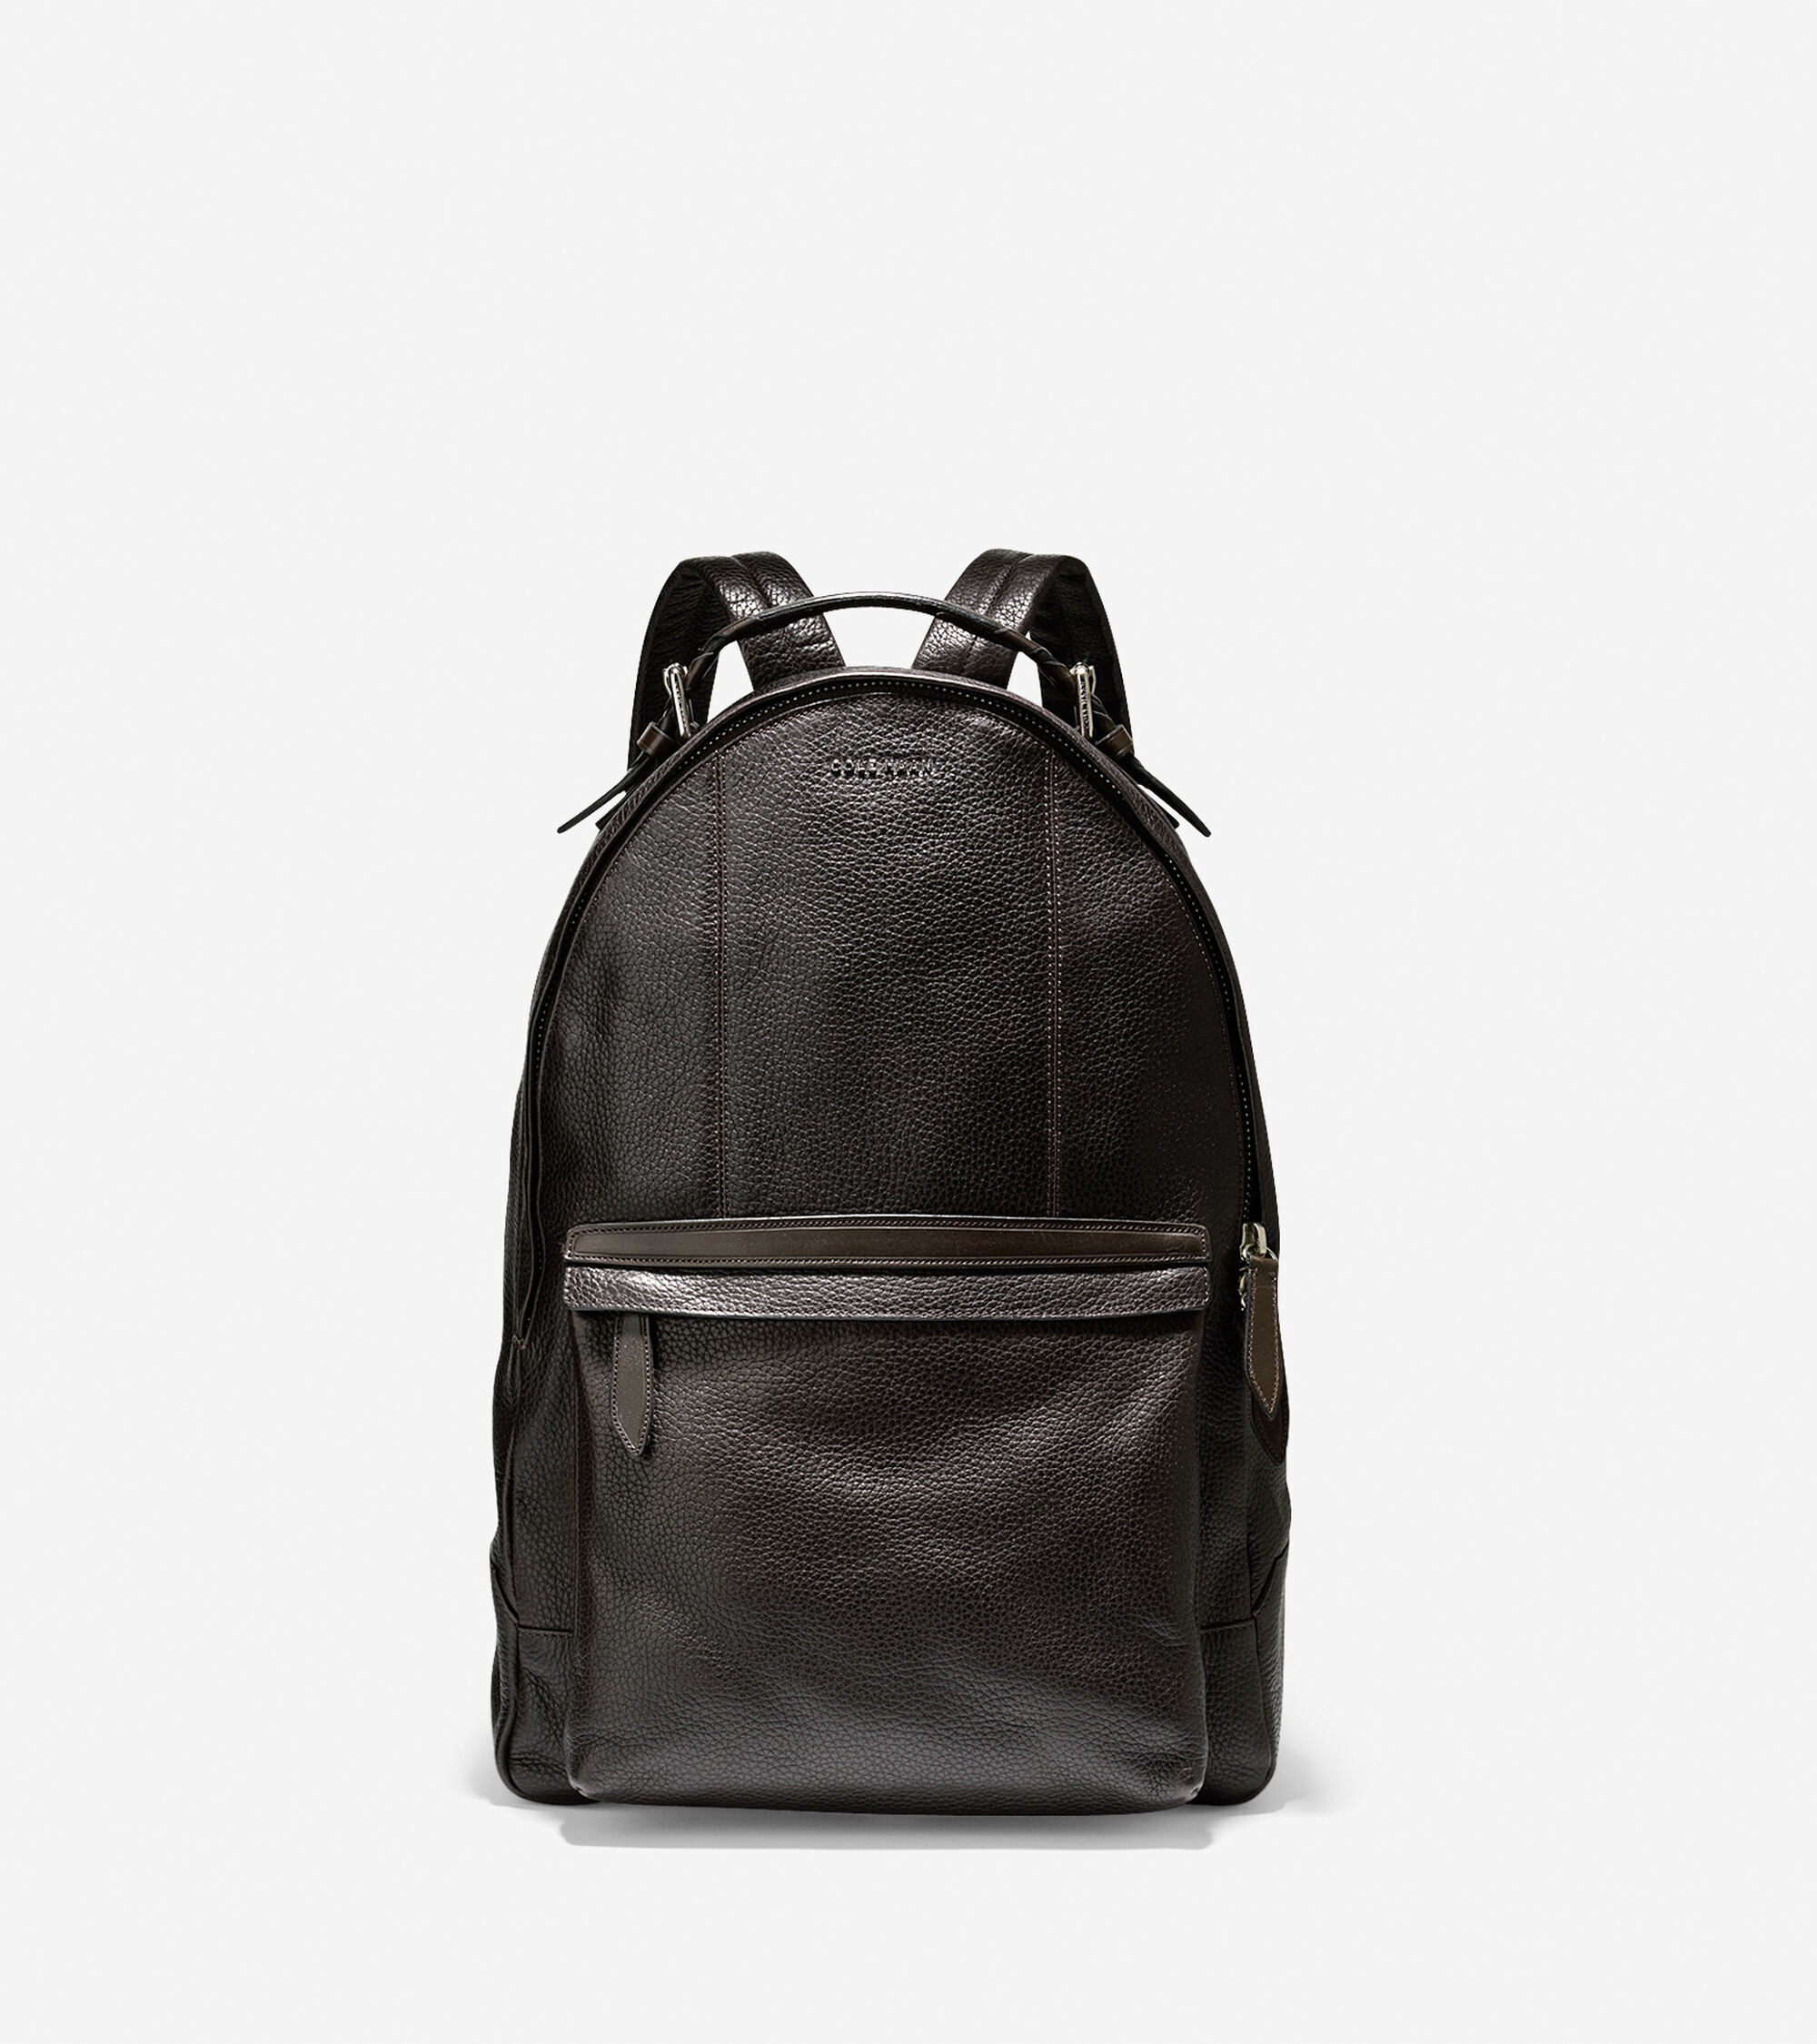 Briefs & Bags > Truman Backpack